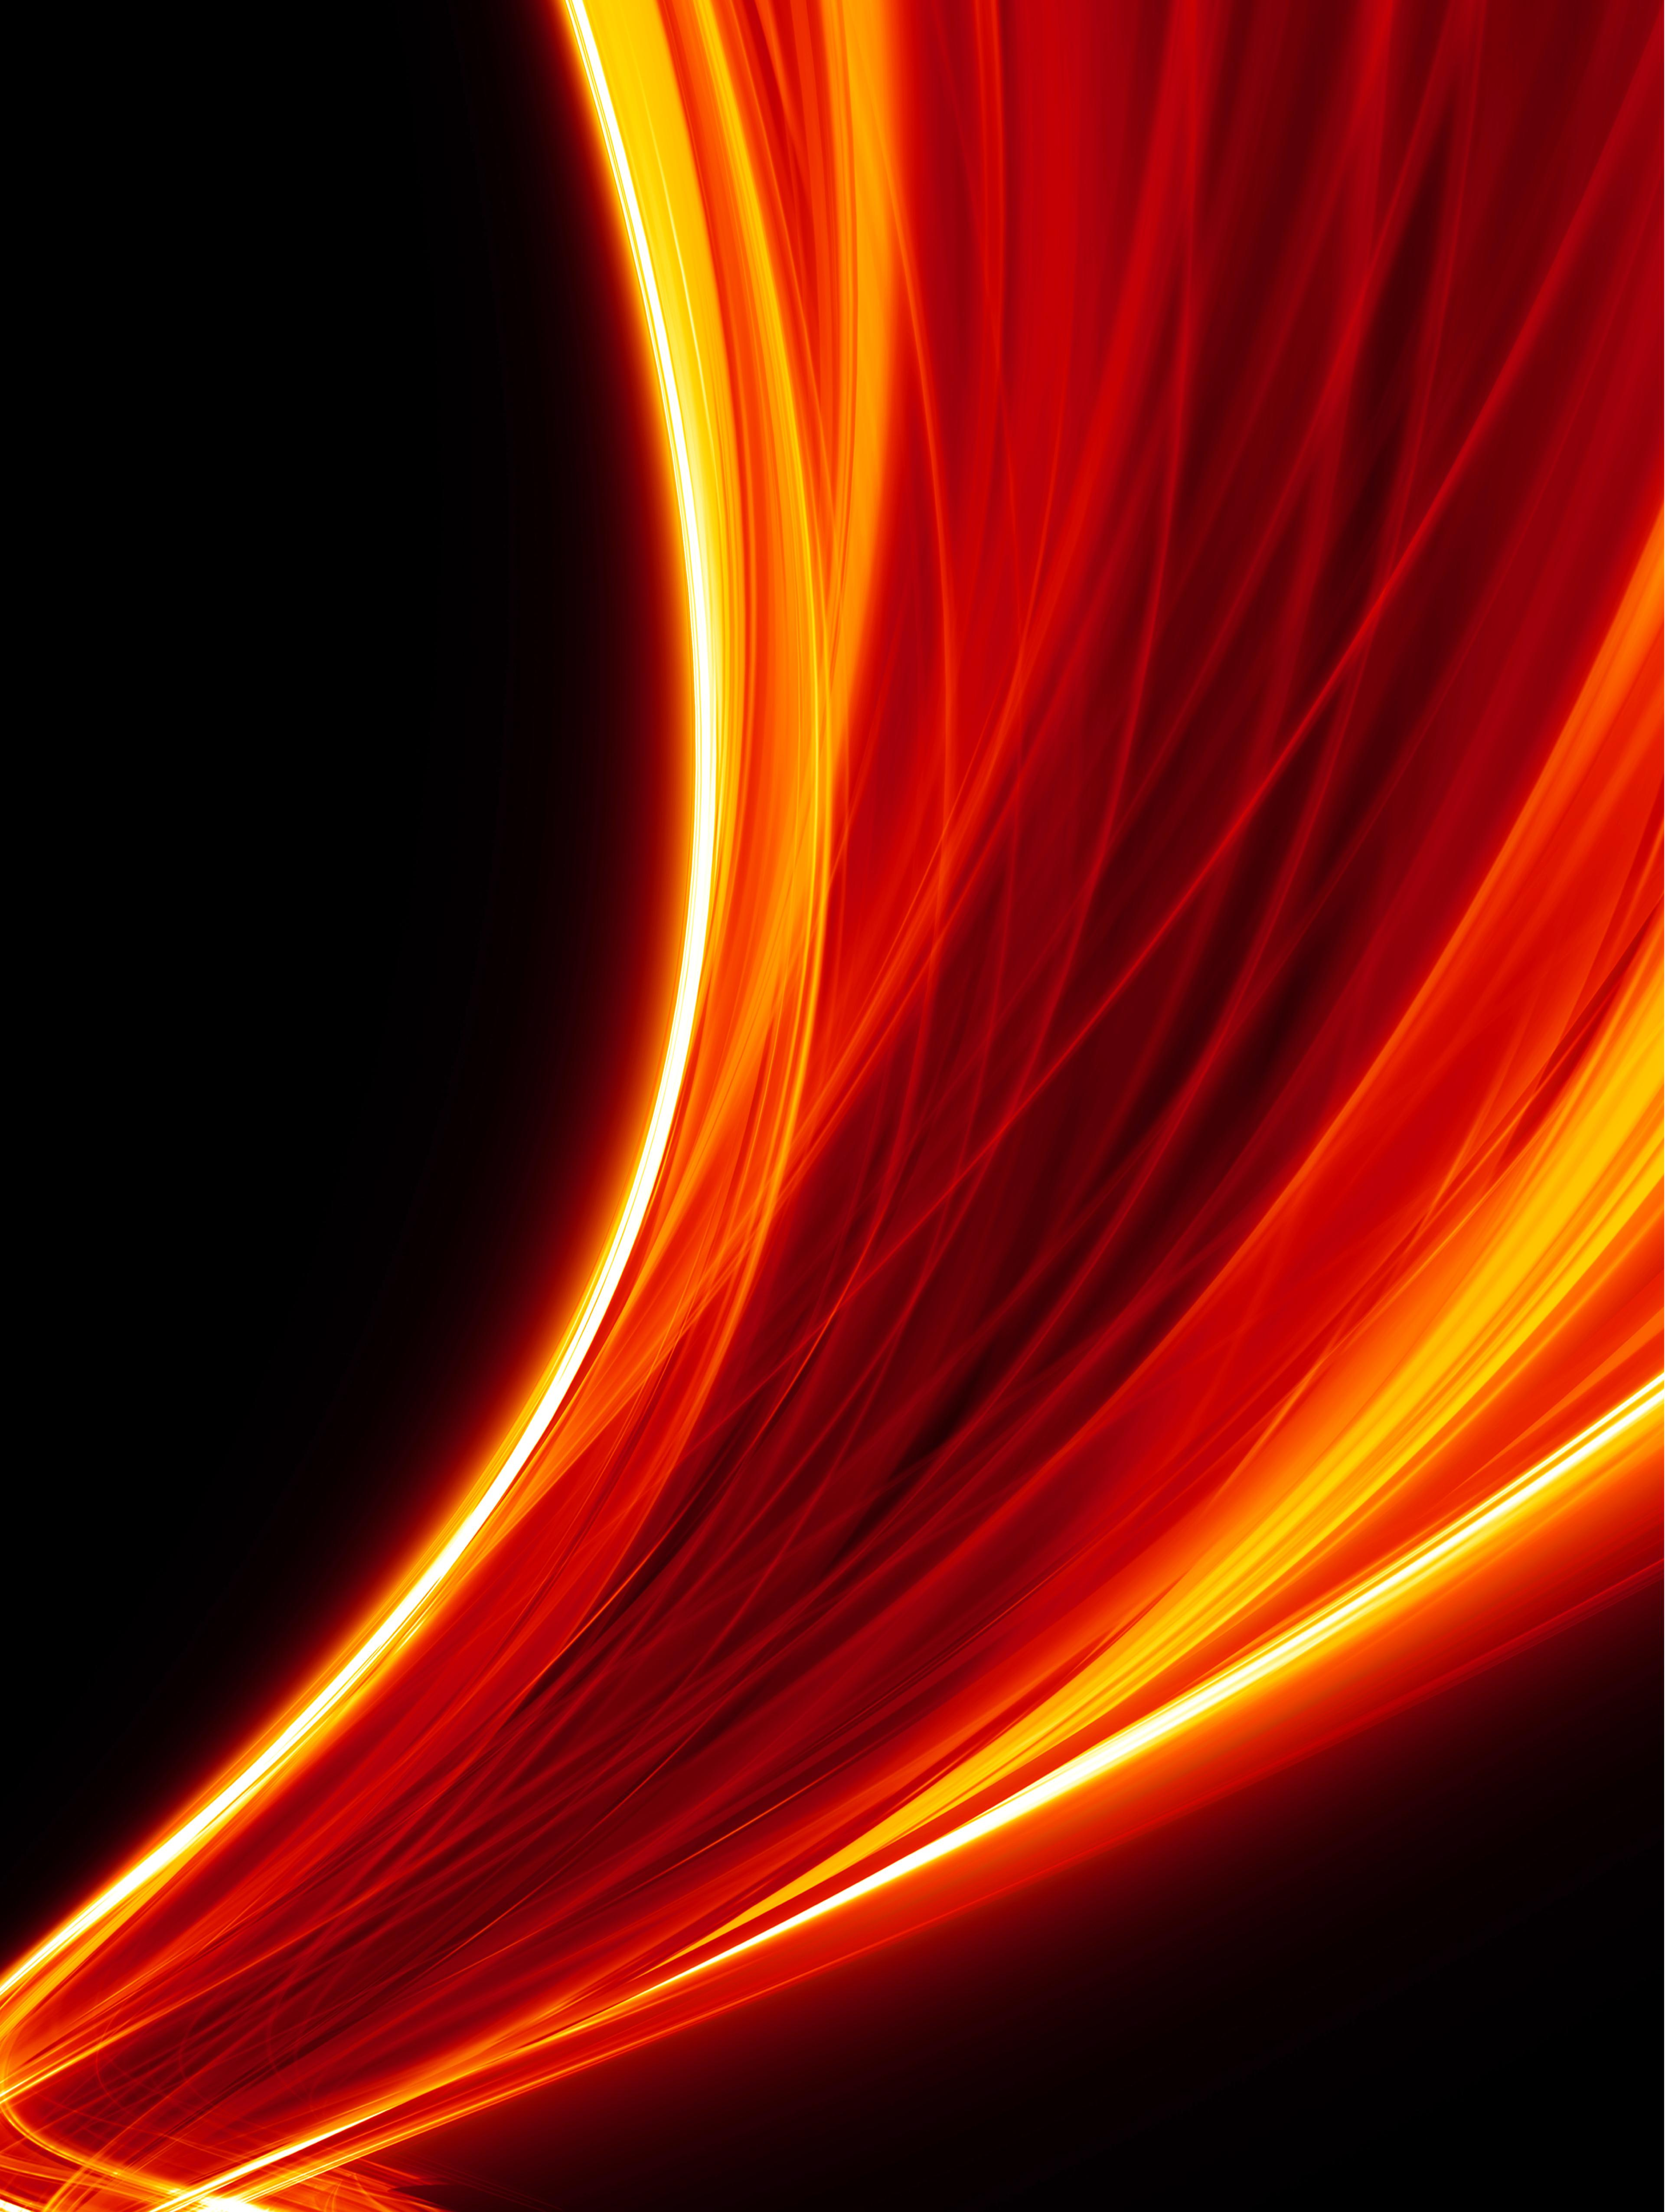 Picture of red light flares